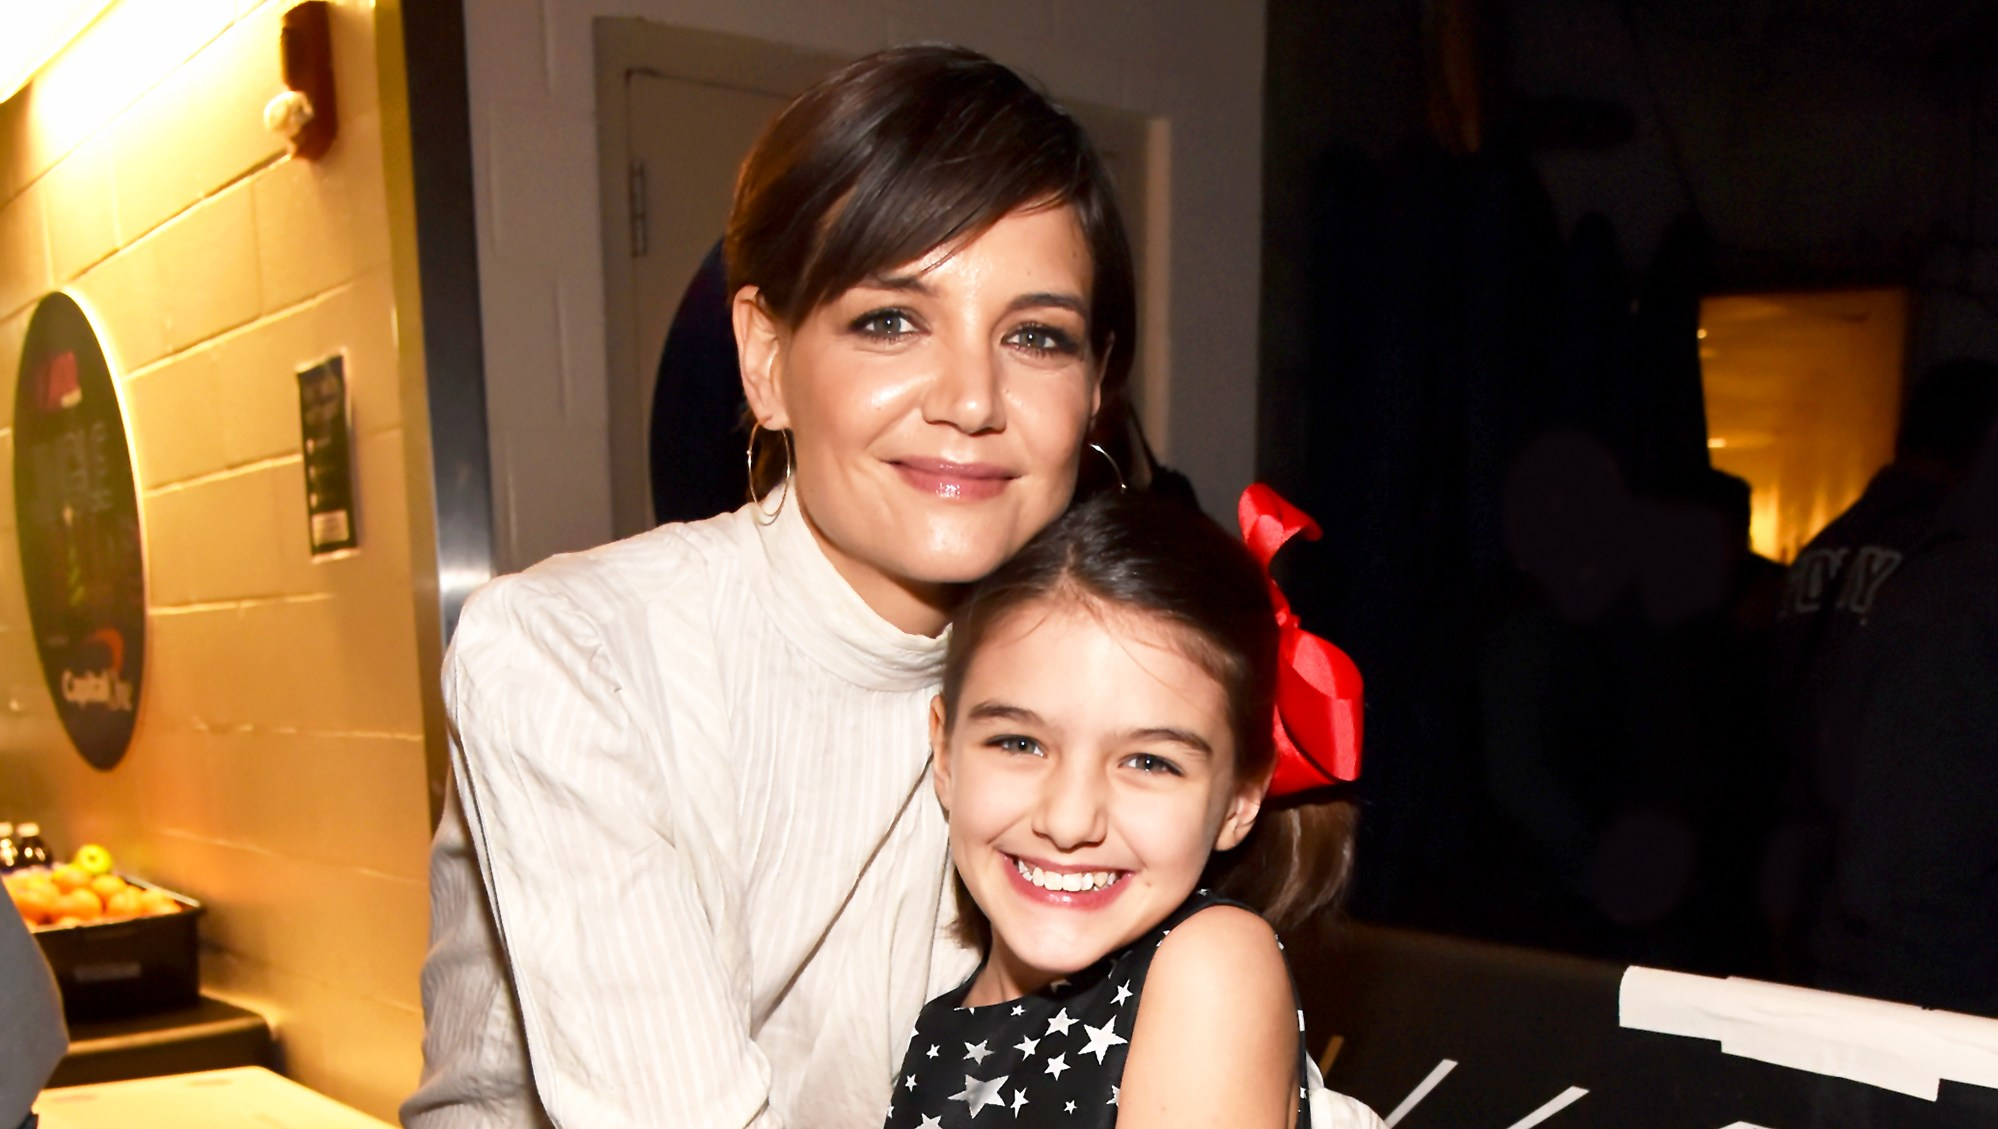 Katie Holmes and Suri Cruise attend the Z100's Jingle Ball 2017 in New York City.